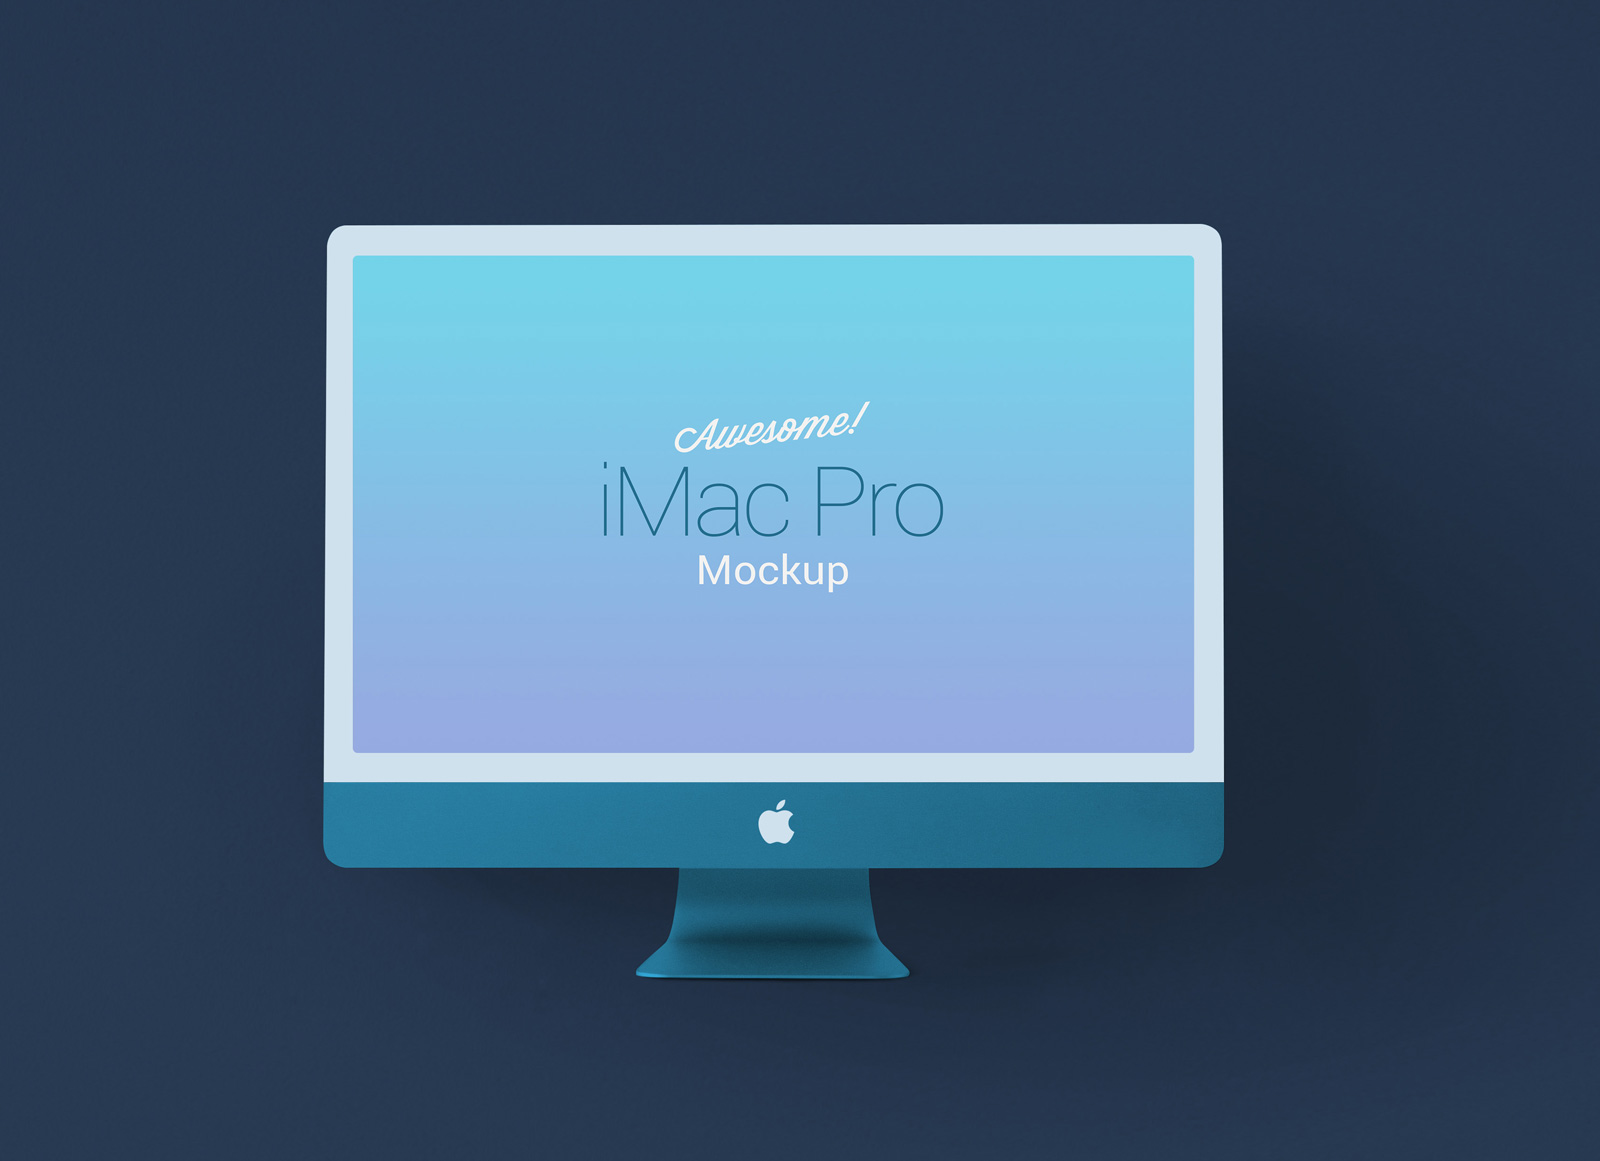 Free-Fully-Customizable-iMac-Pro-Mockup-PSD-3